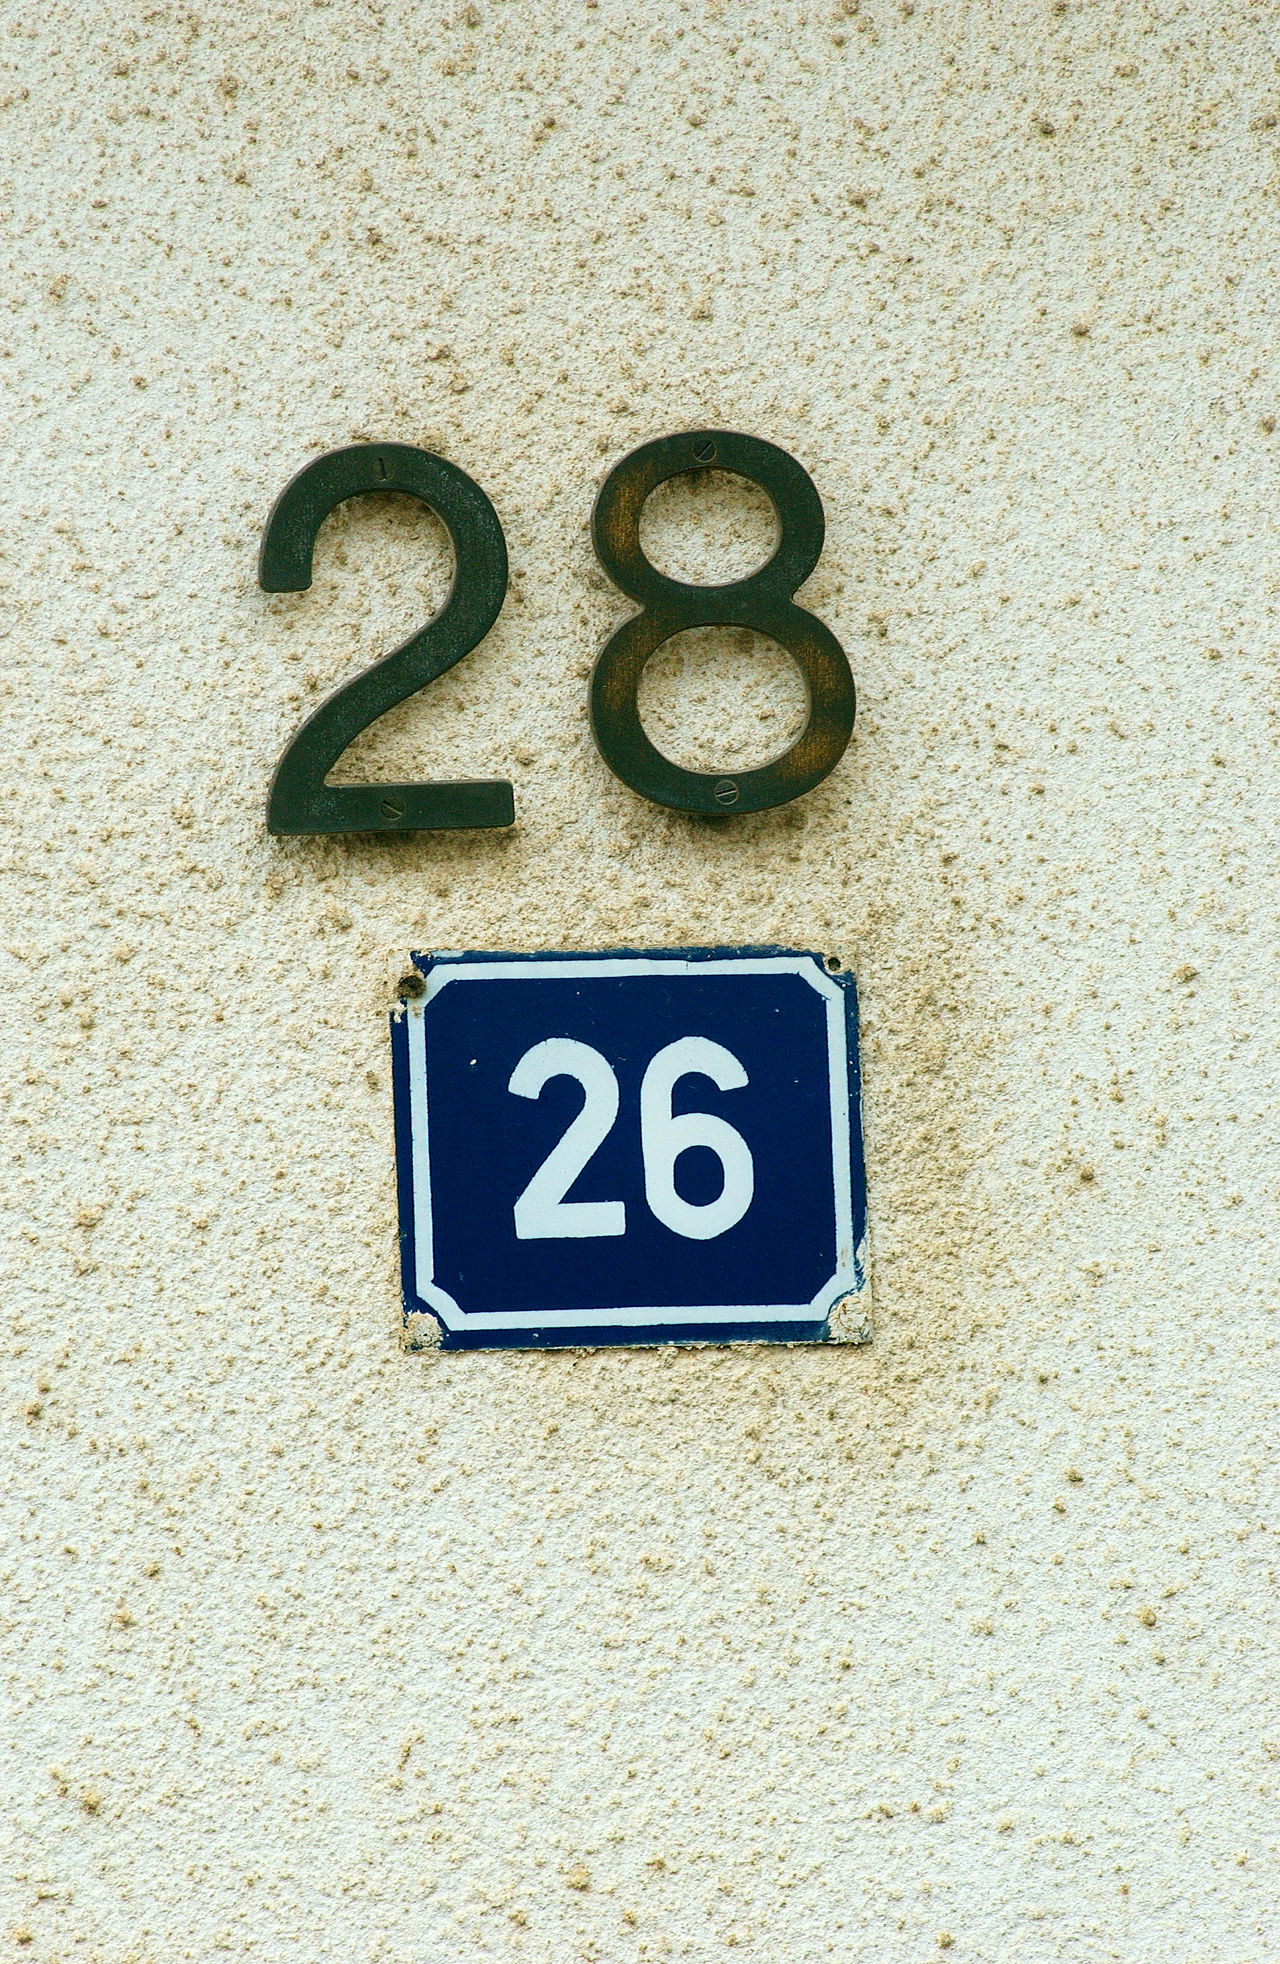 house number 26 28 29 30 Architecture Close-up Day Door Number House Number Metal No People Number Plate Outdoors Street Numbers Strrt Number